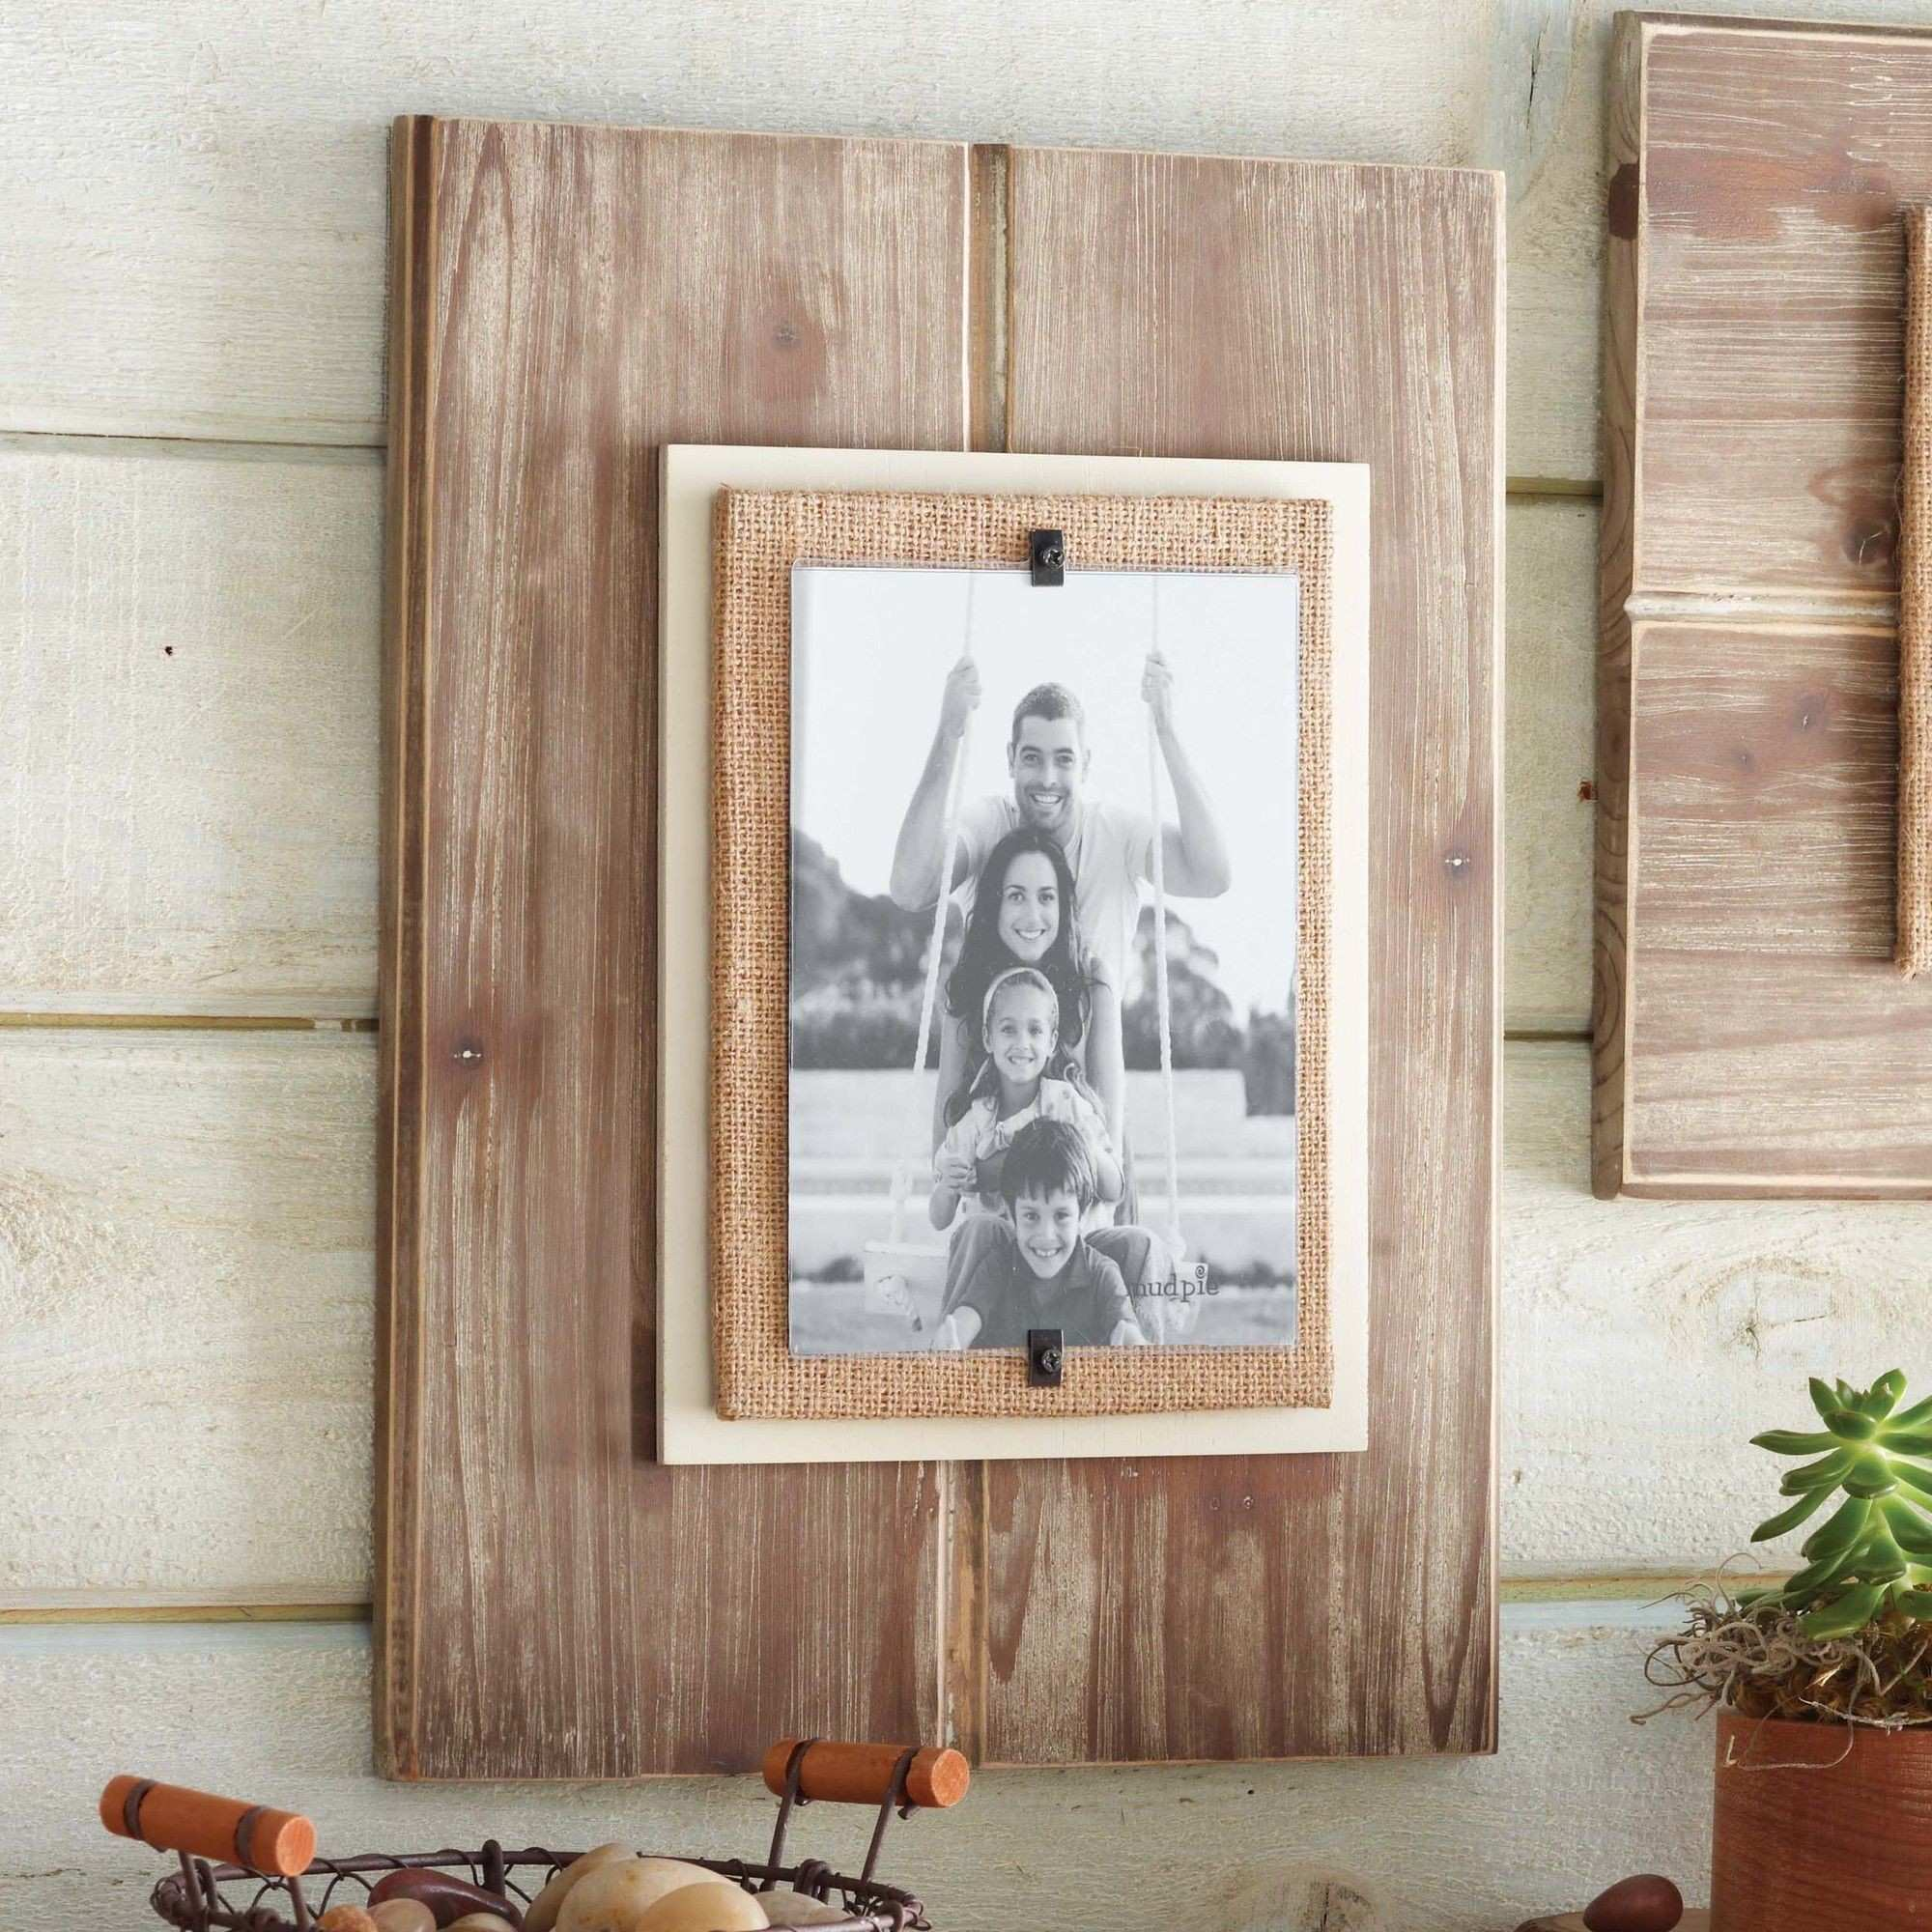 5x7 Picture Frames Lovely Features Distressed Wood Frame with Burlap ...